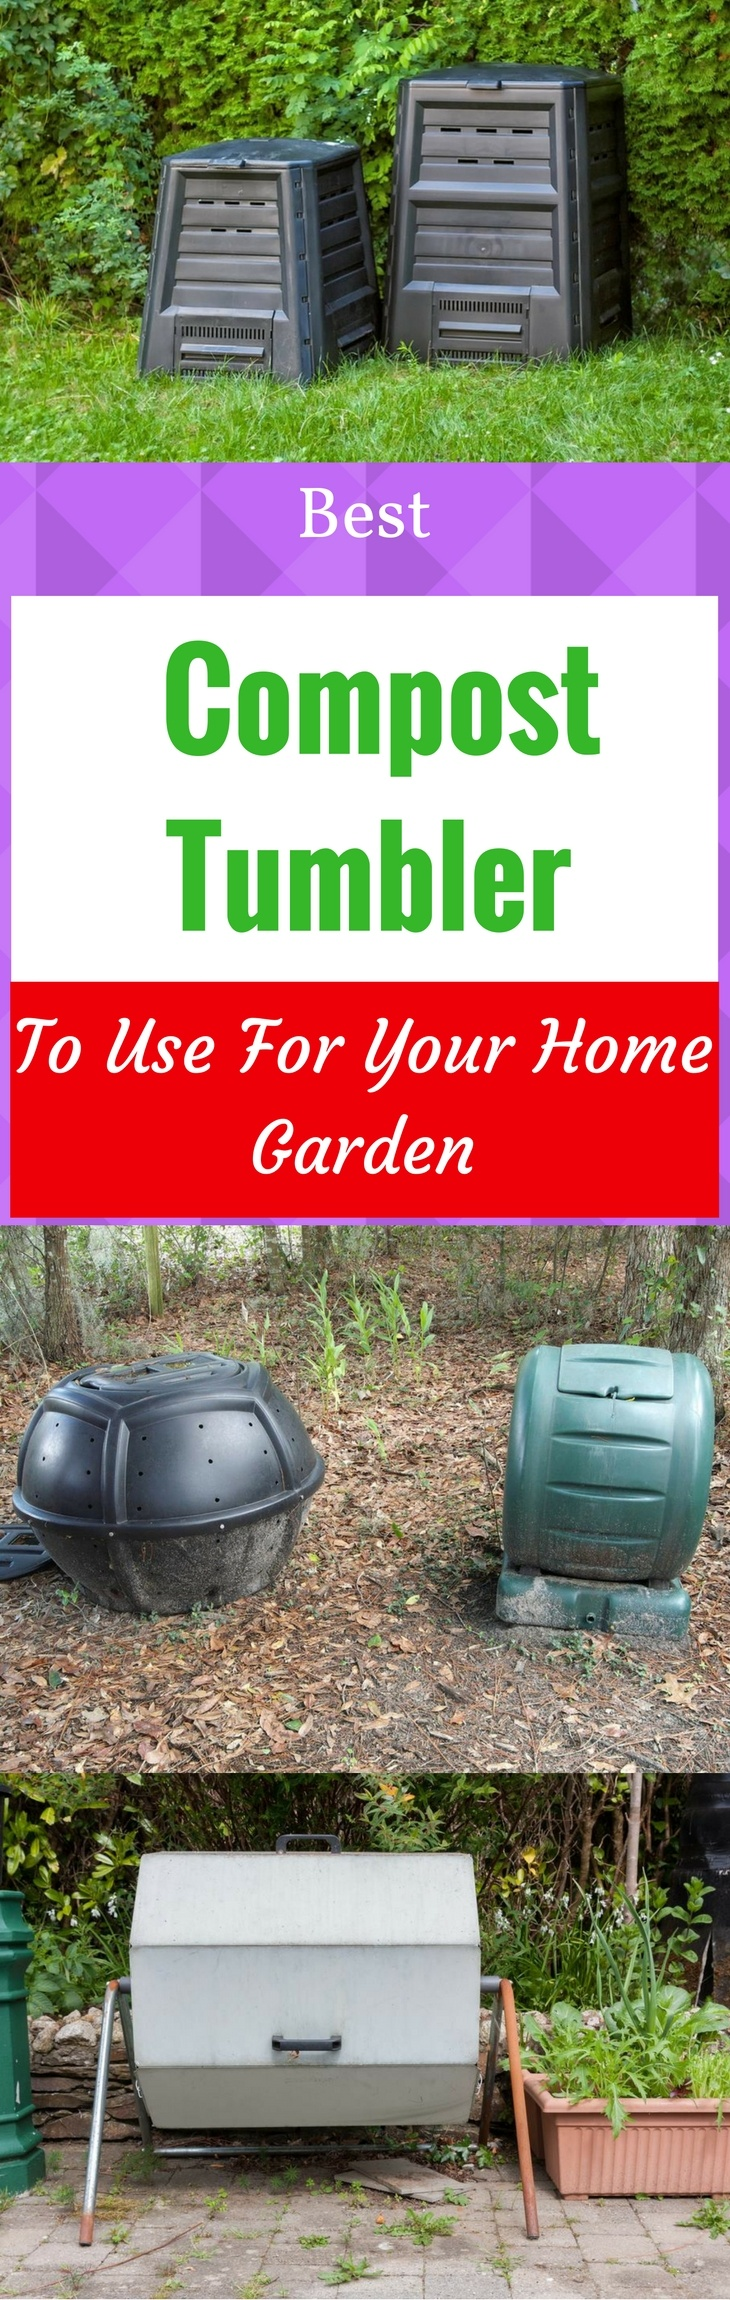 Best Compost Tumbler To Use For Your Home Garden - Pin it